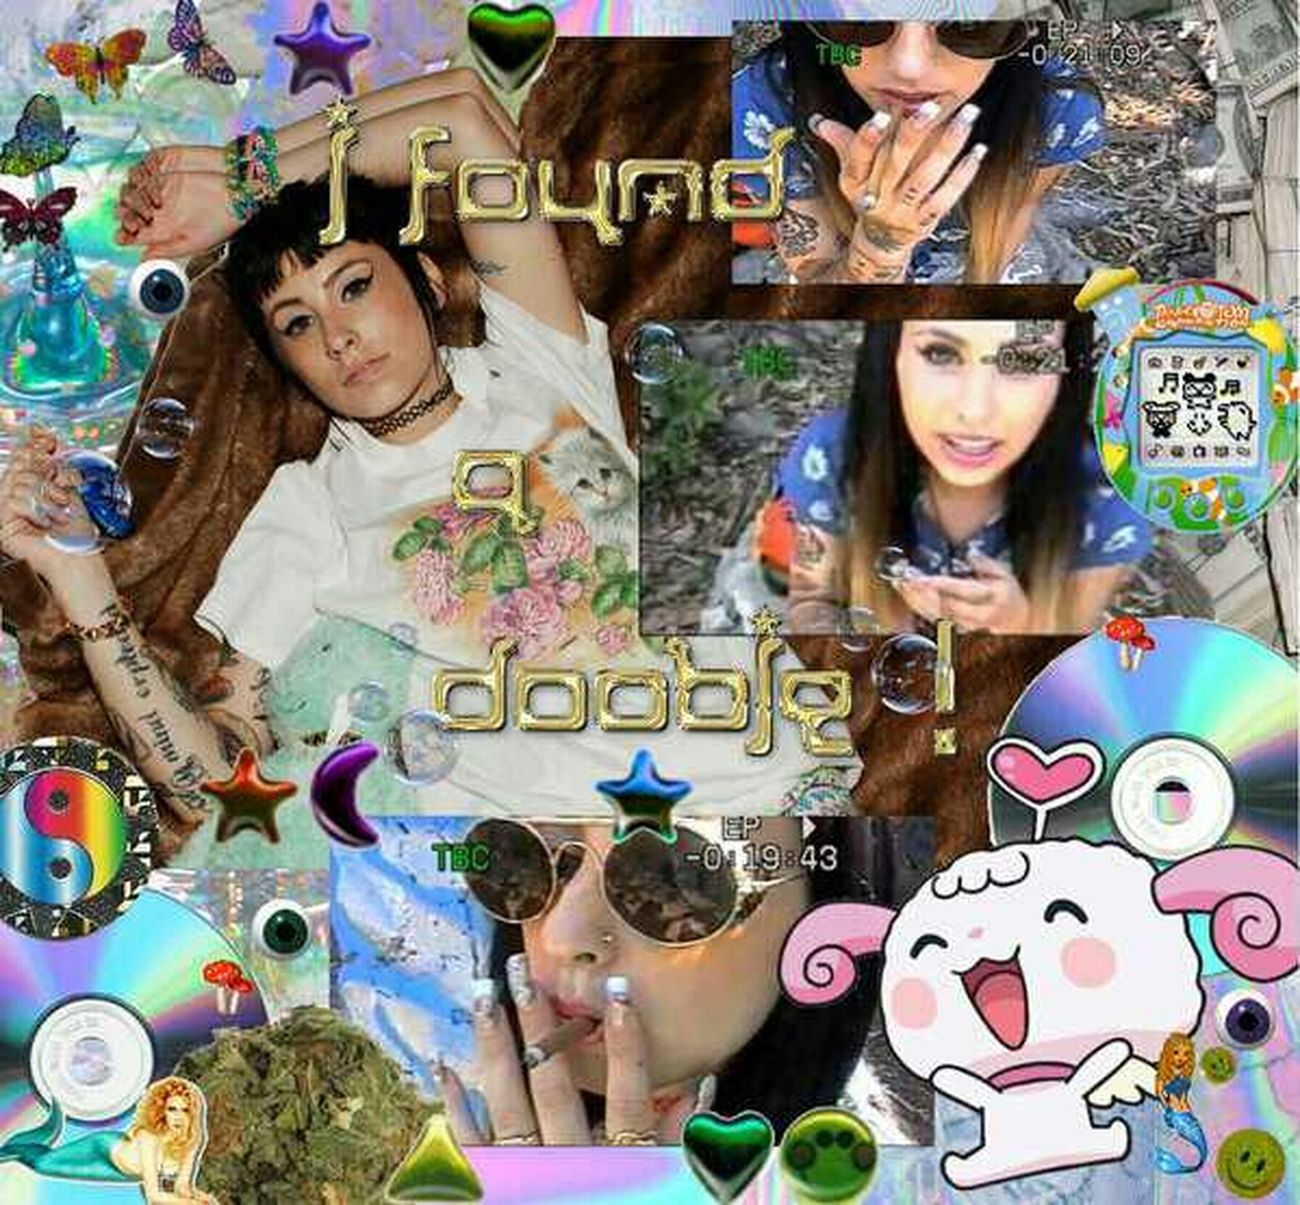 #KreaysProject Kreayshawn